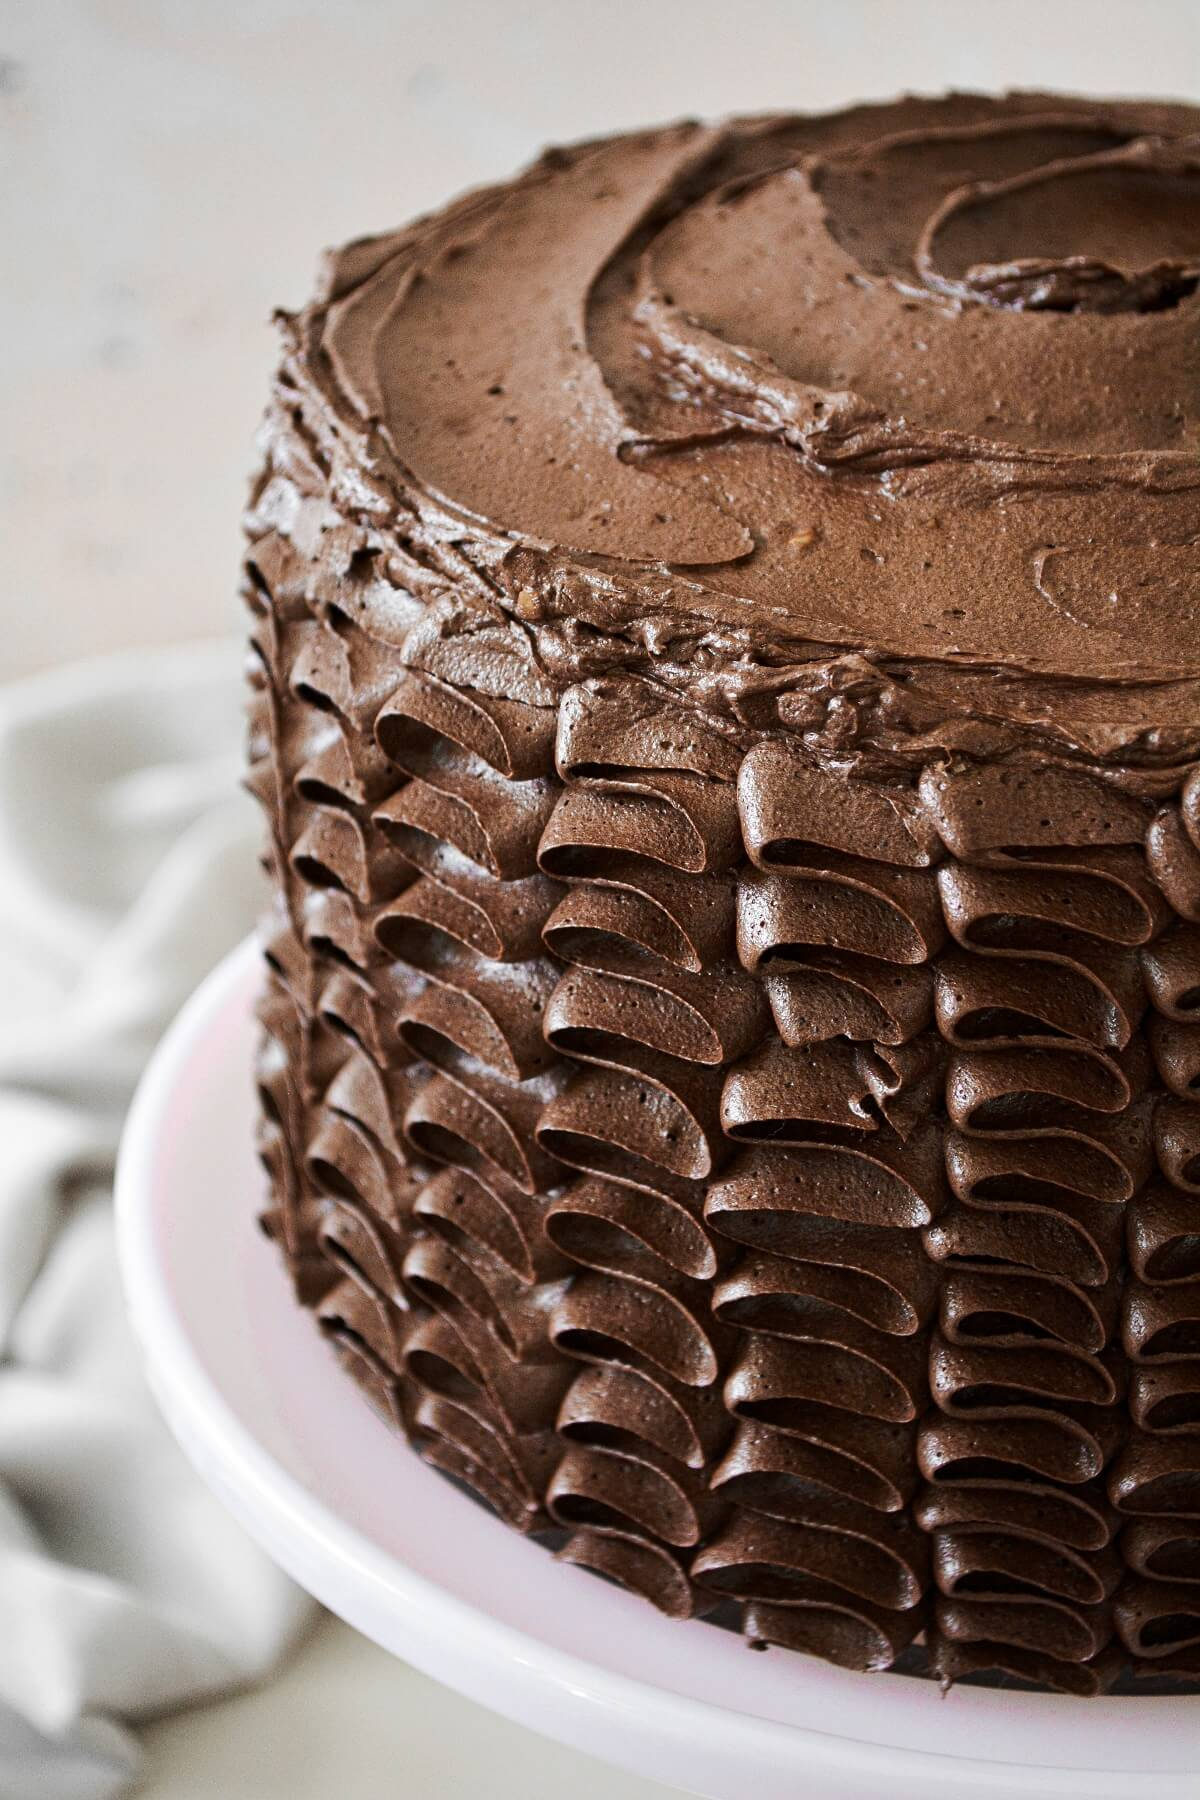 Chocolate caramel toffee cake with piped ruffled buttercream.